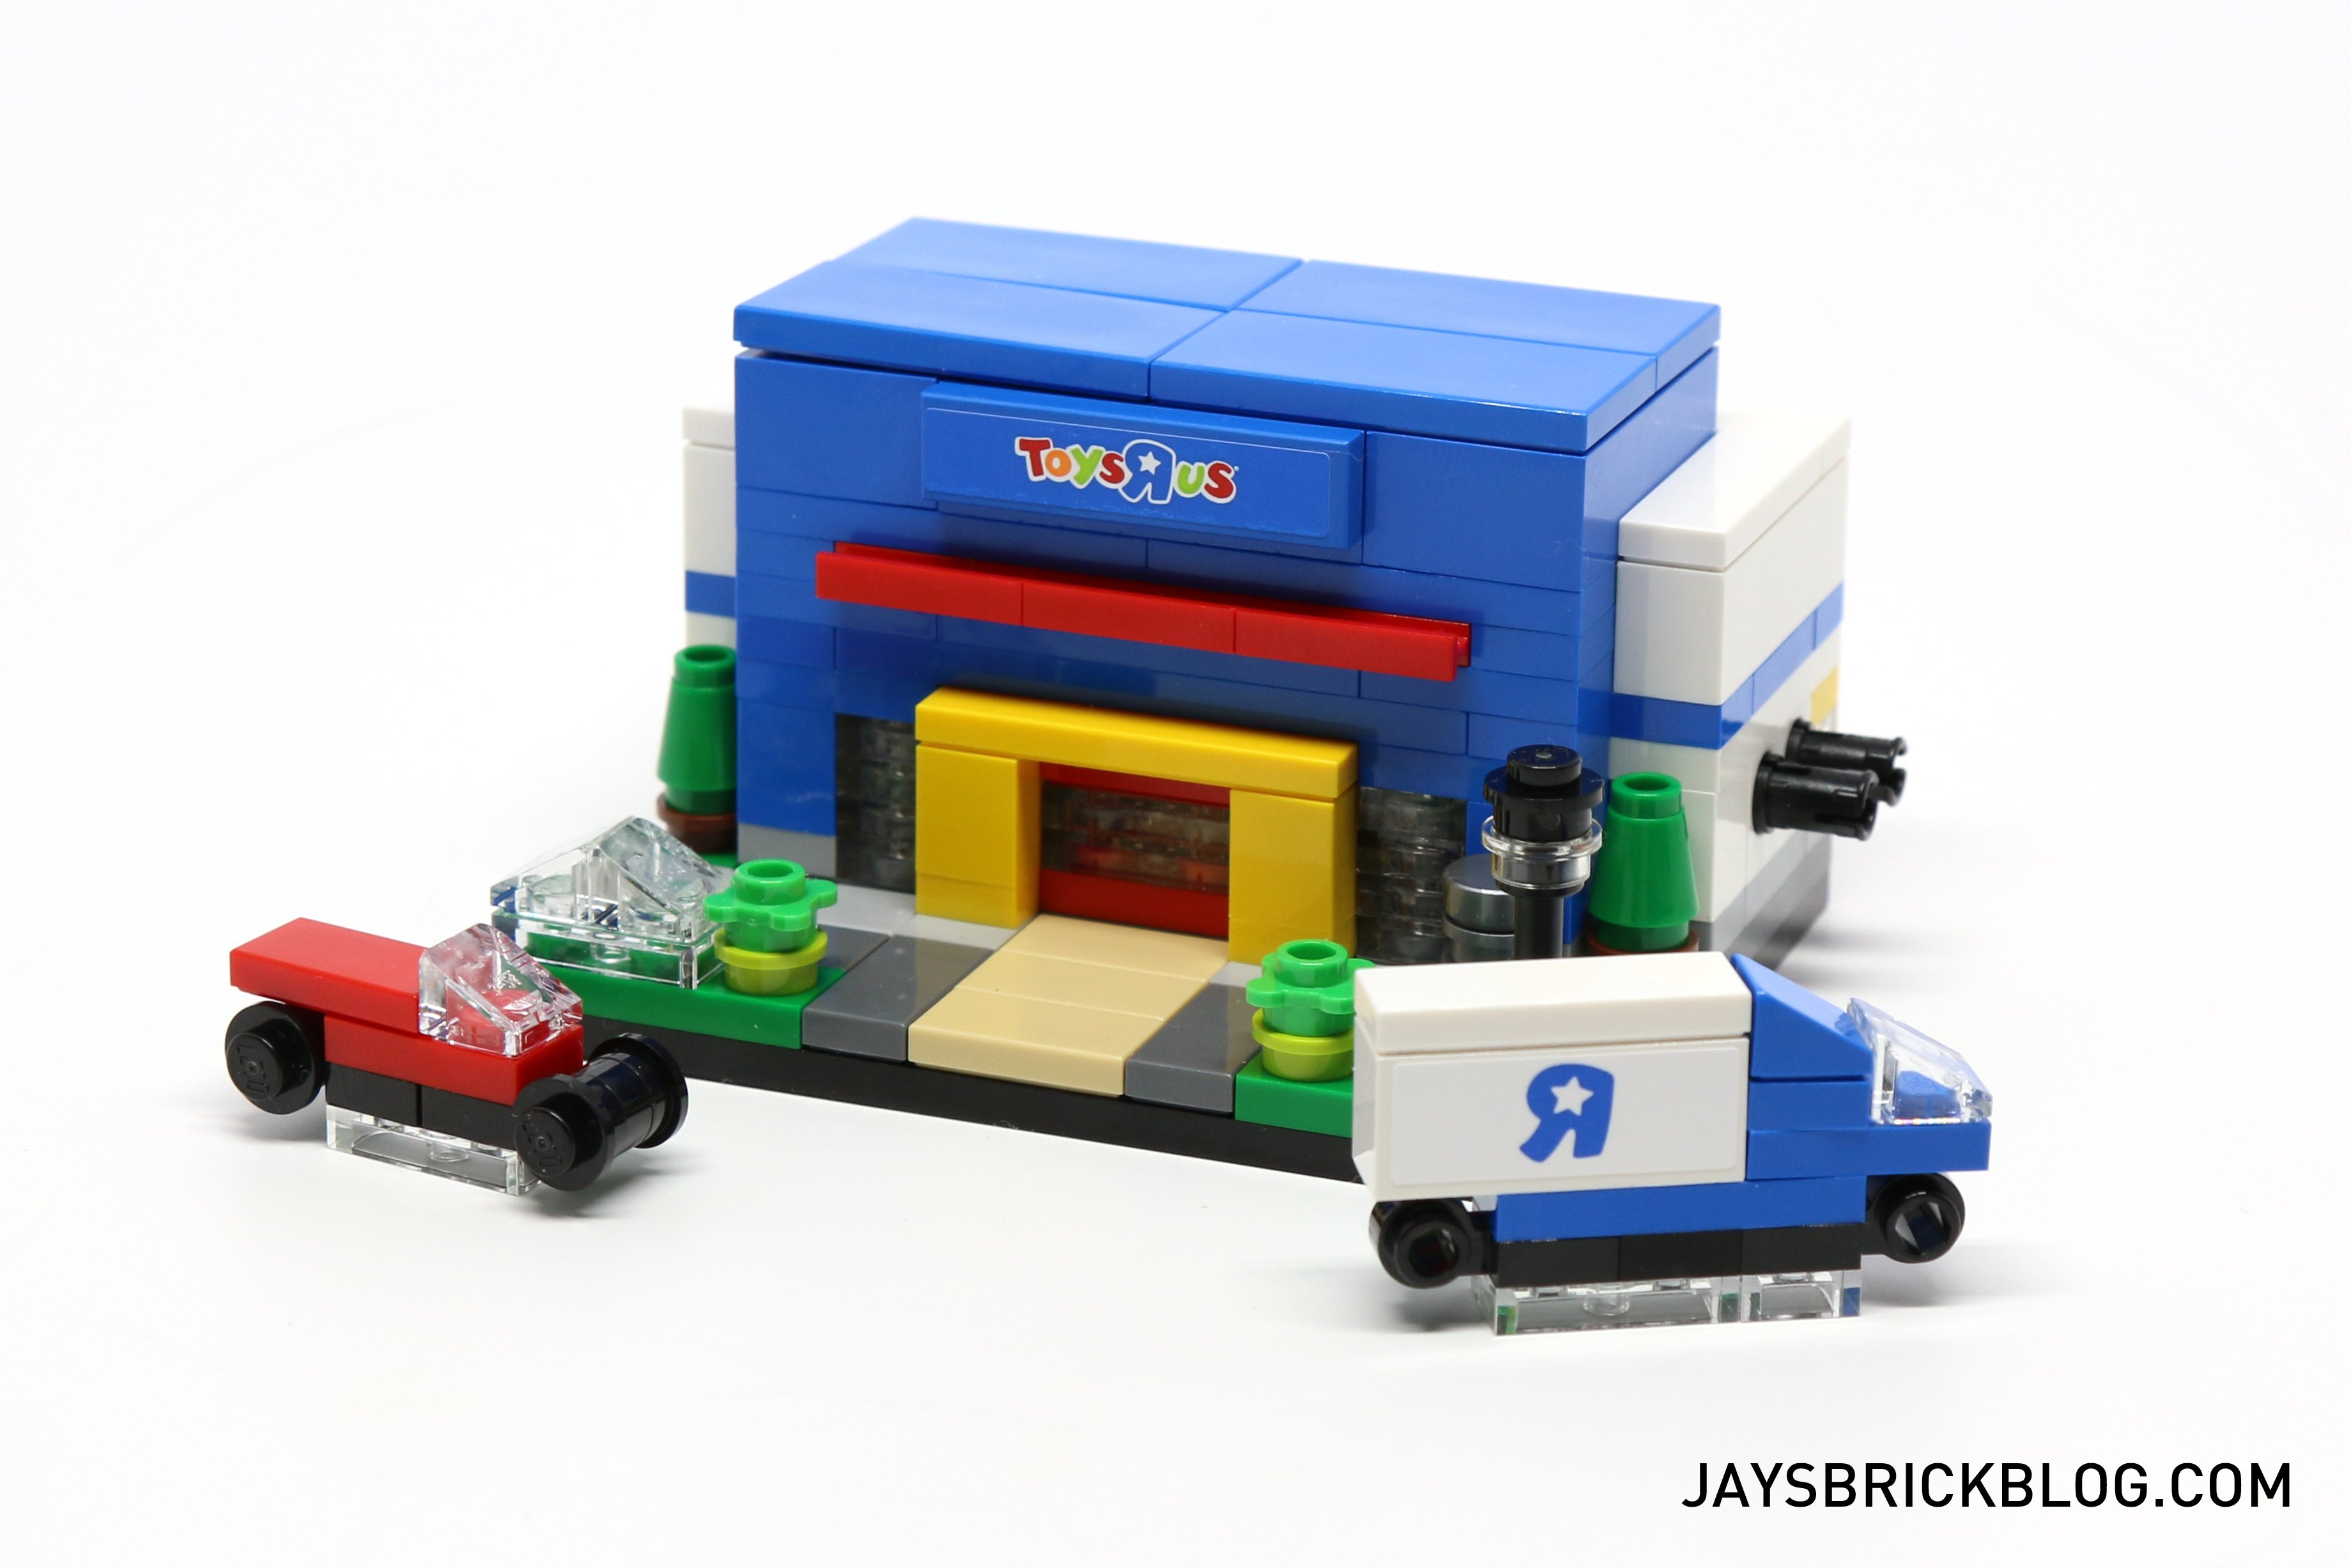 toys r us lego table and chairs black aluminium garden review bricktober 2015 buildings